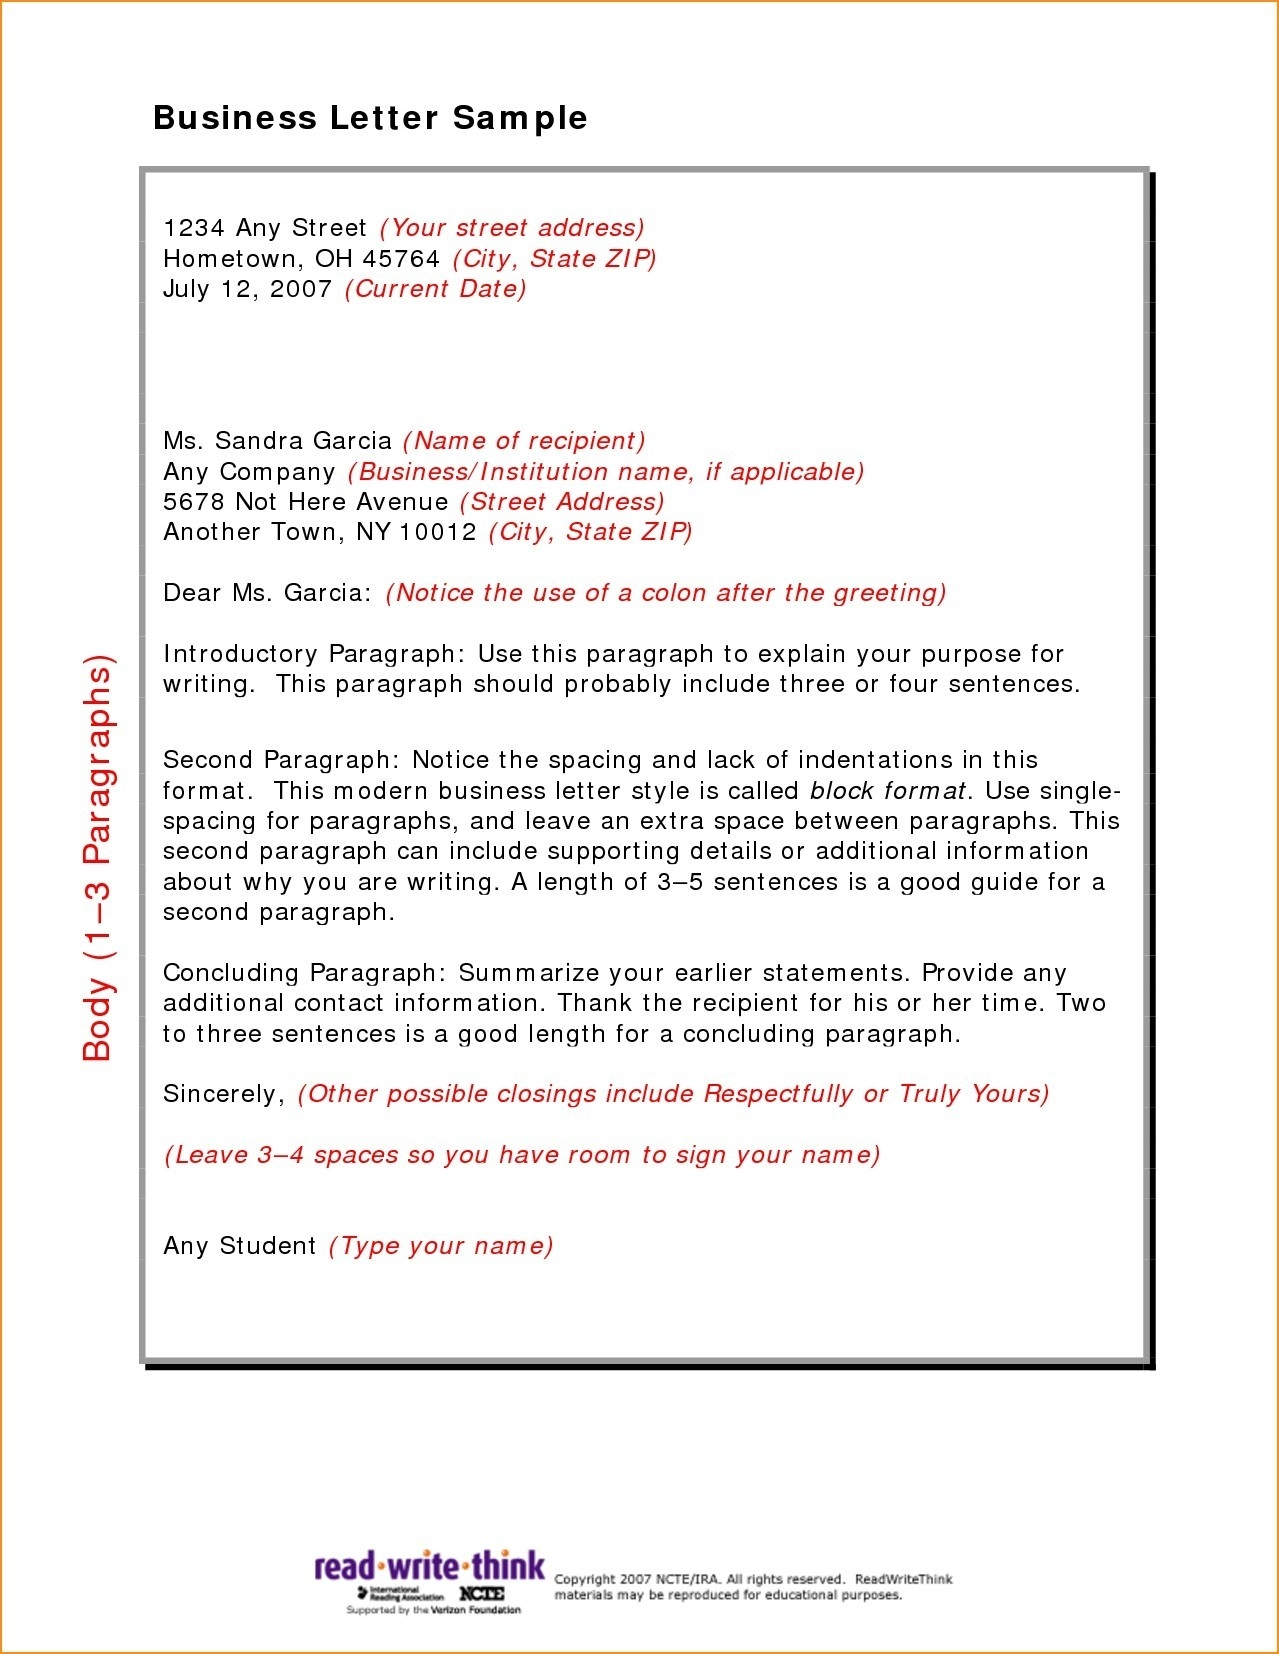 Persuasive Letter Format For Middle School Copy Cute Business for Friendly Letter Format For Middle School 21921